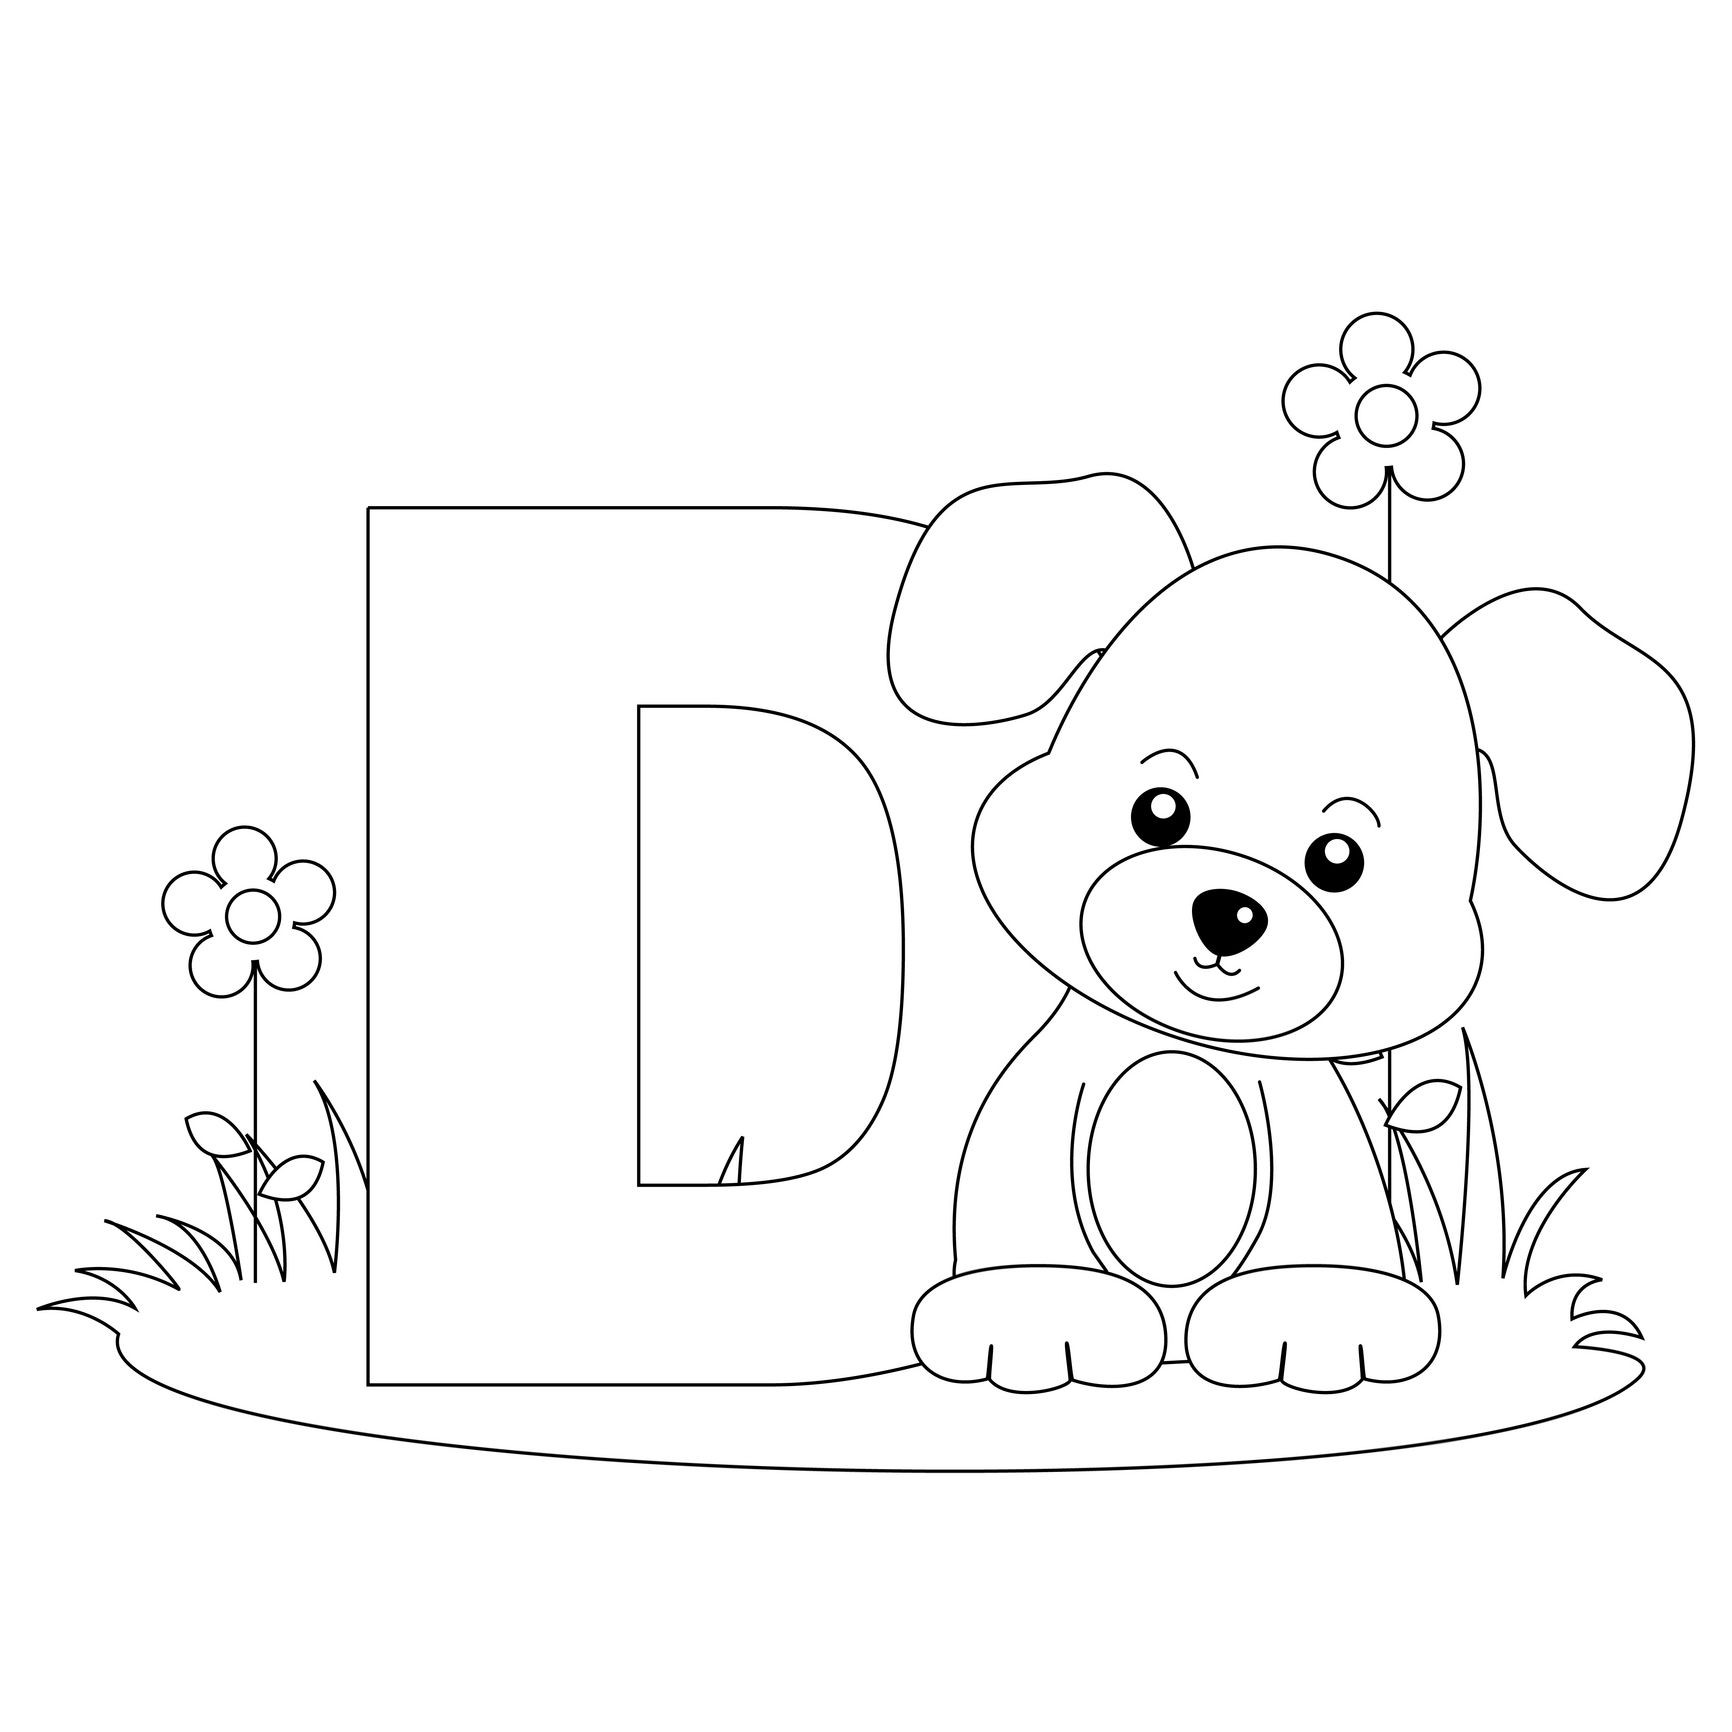 coloring pages : Alphabet Coloring Pages For Toddlers Beautiful Animal  Alphabet Letter D Is For Dog Here S A Simple Alphabet Coloring Pages for  toddlers ~ affiliateprogrambook.com